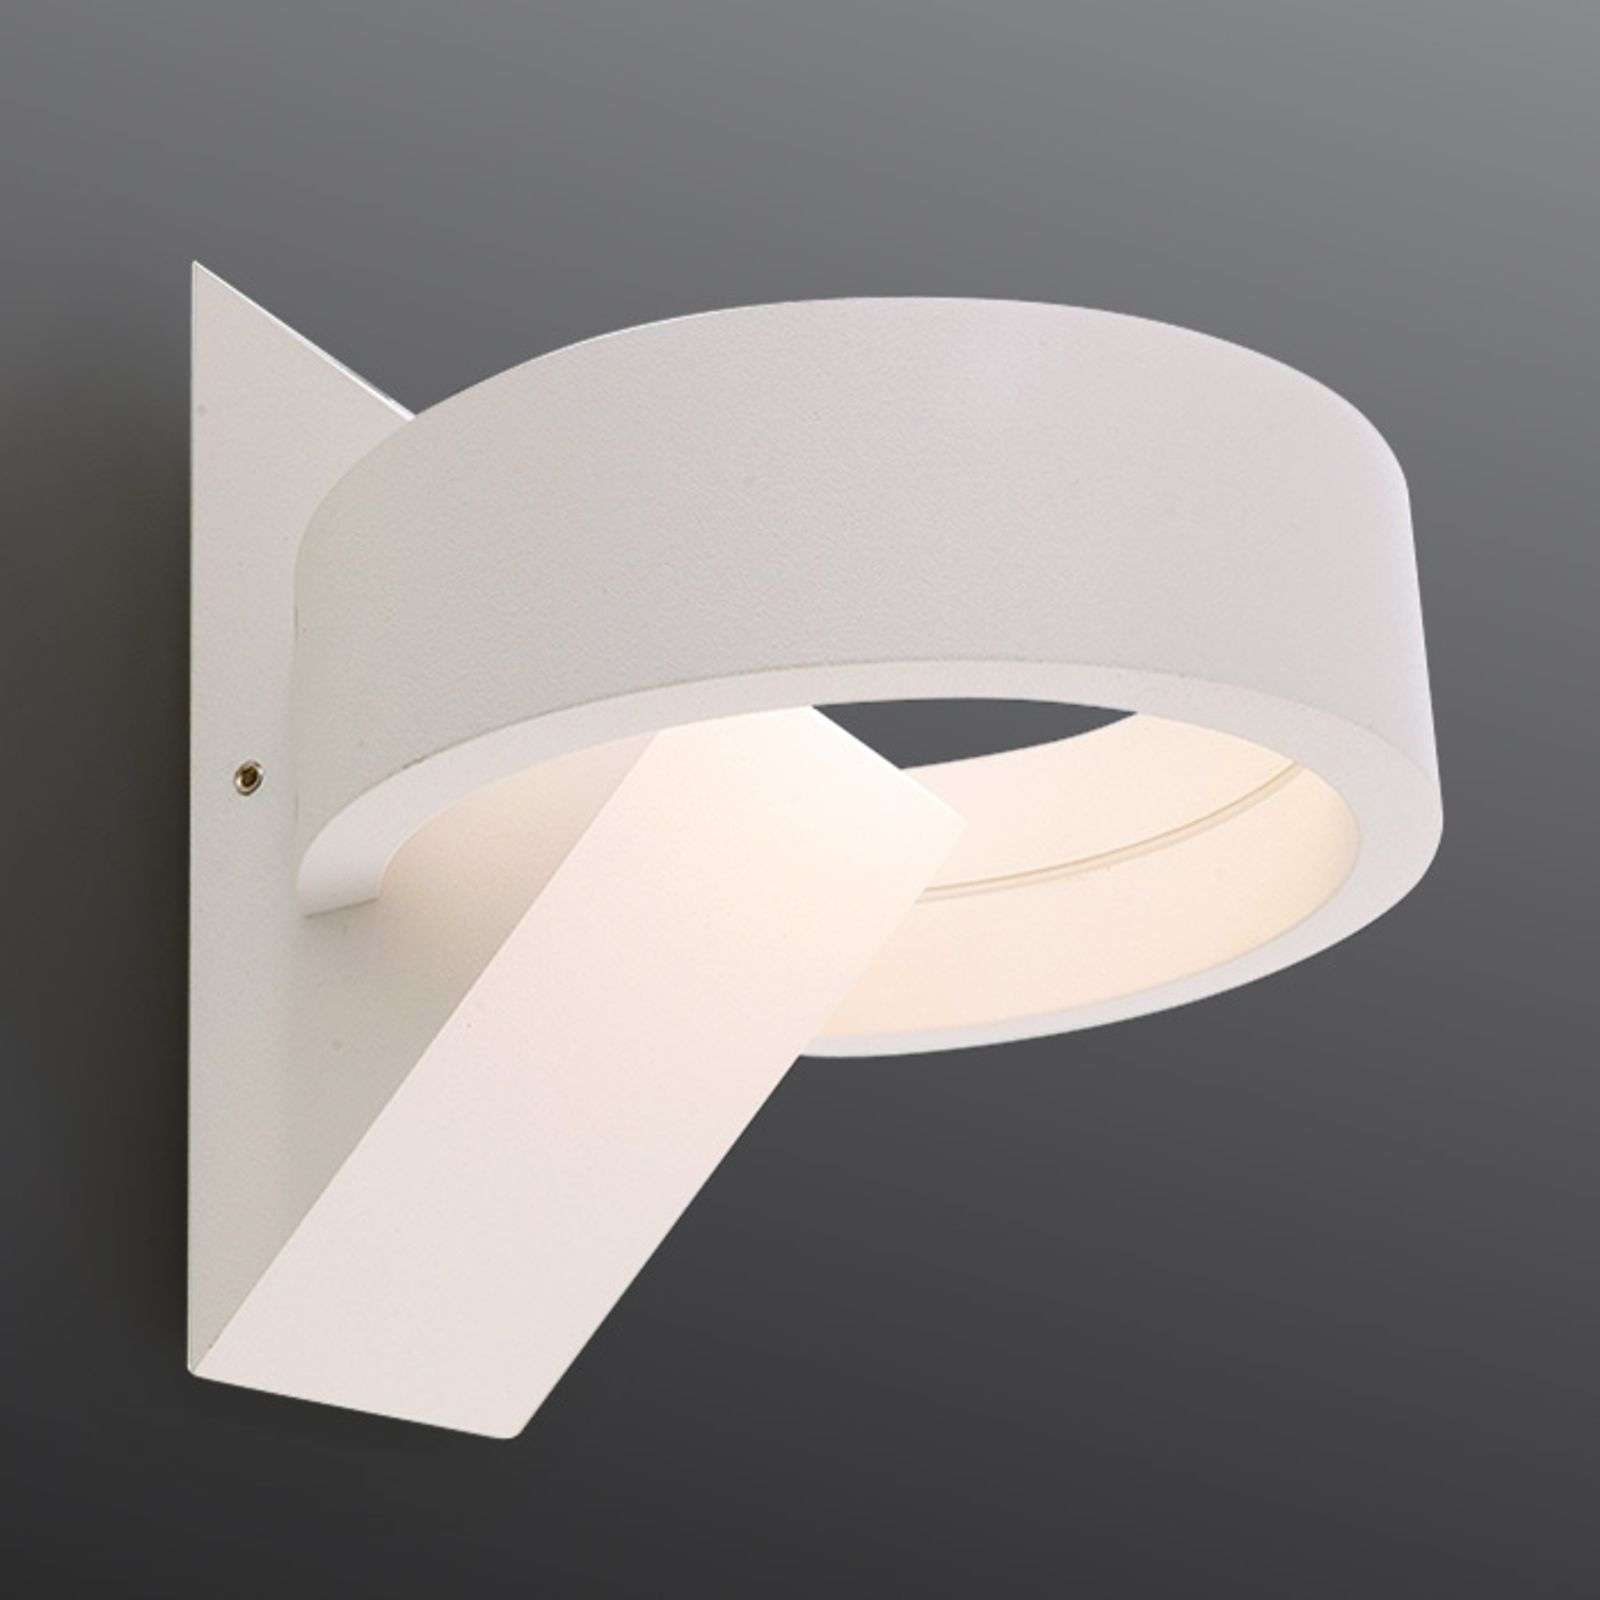 Applique murale LED Gracie en blanc